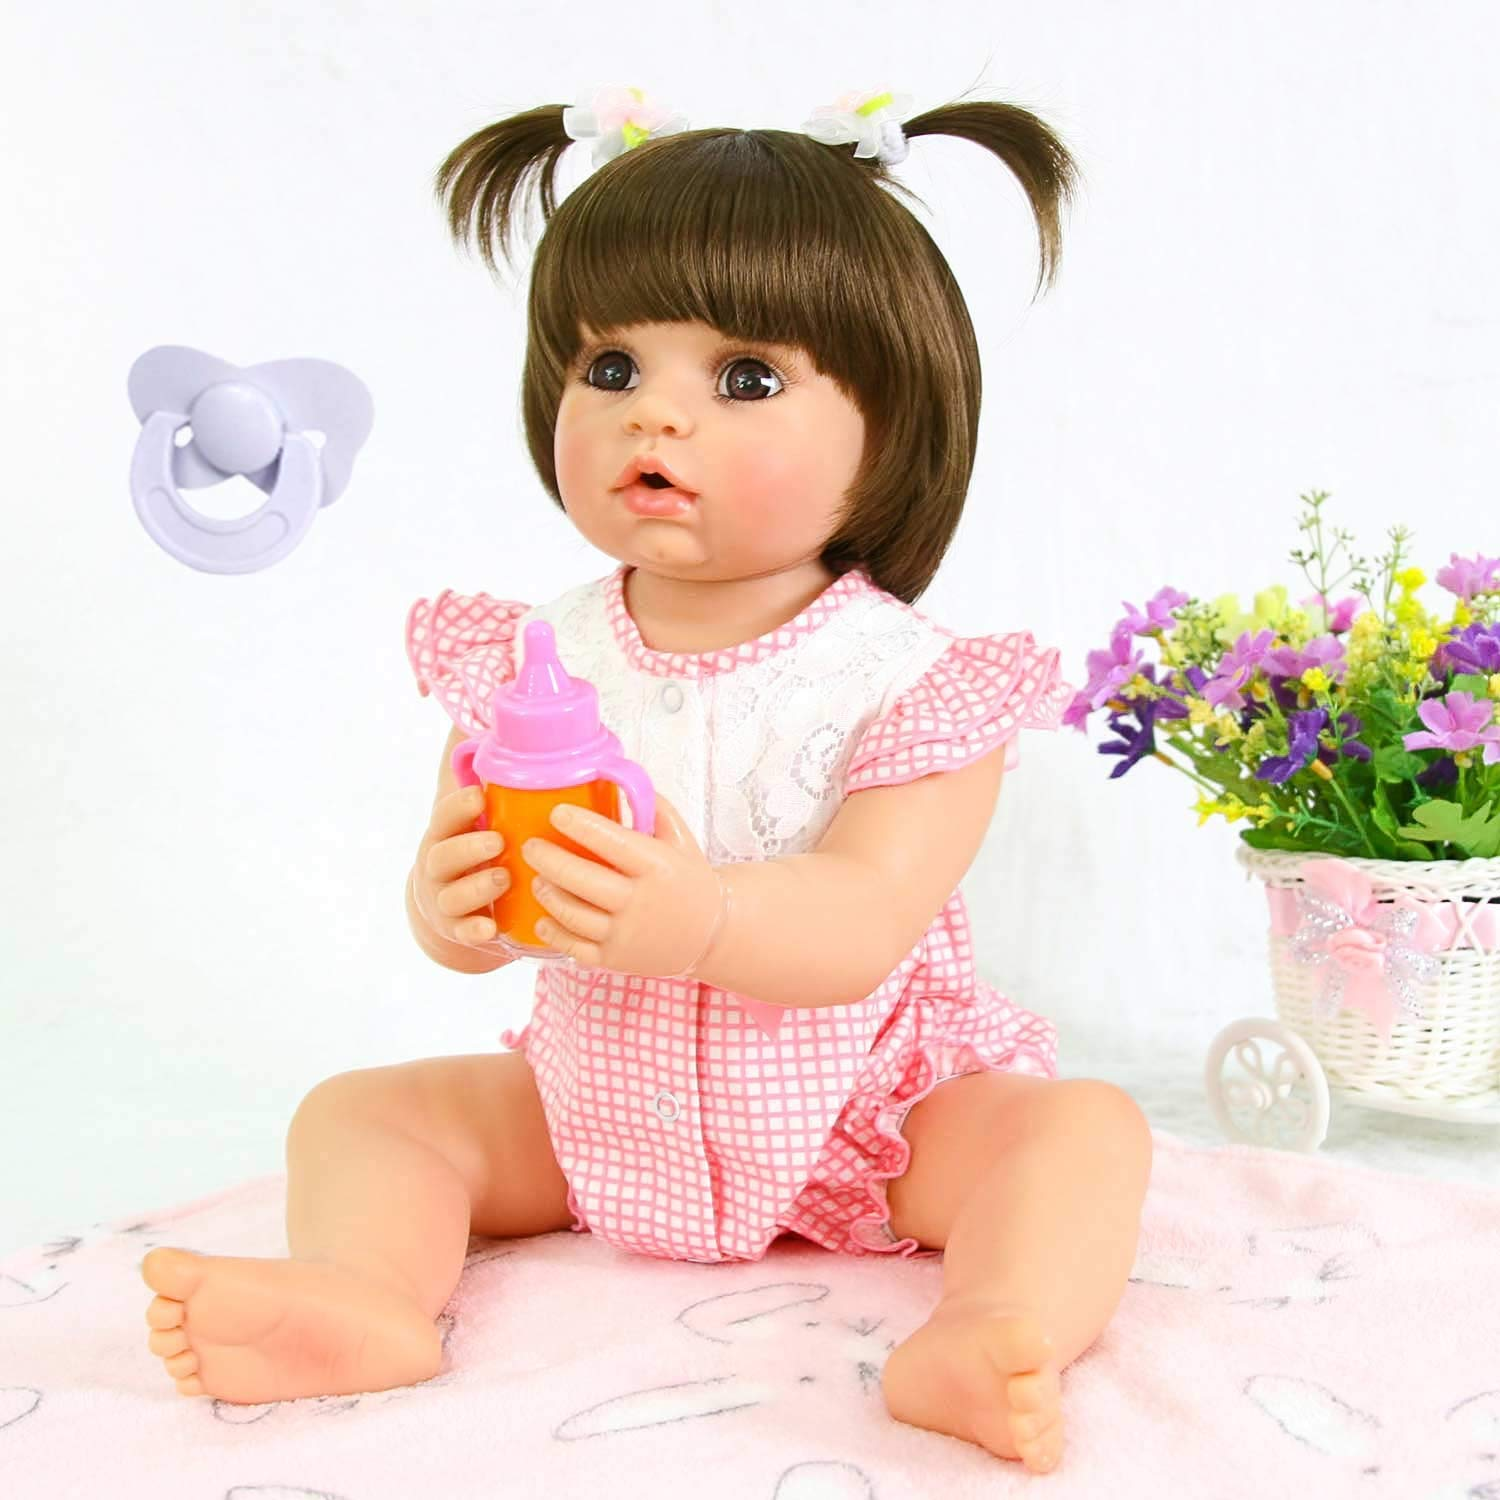 Pursuebaby doll washable full body reborn toddler girl doll opened mouth abby 22 inch adorable real life baby dolls with plugin pacifier toy gift set pink